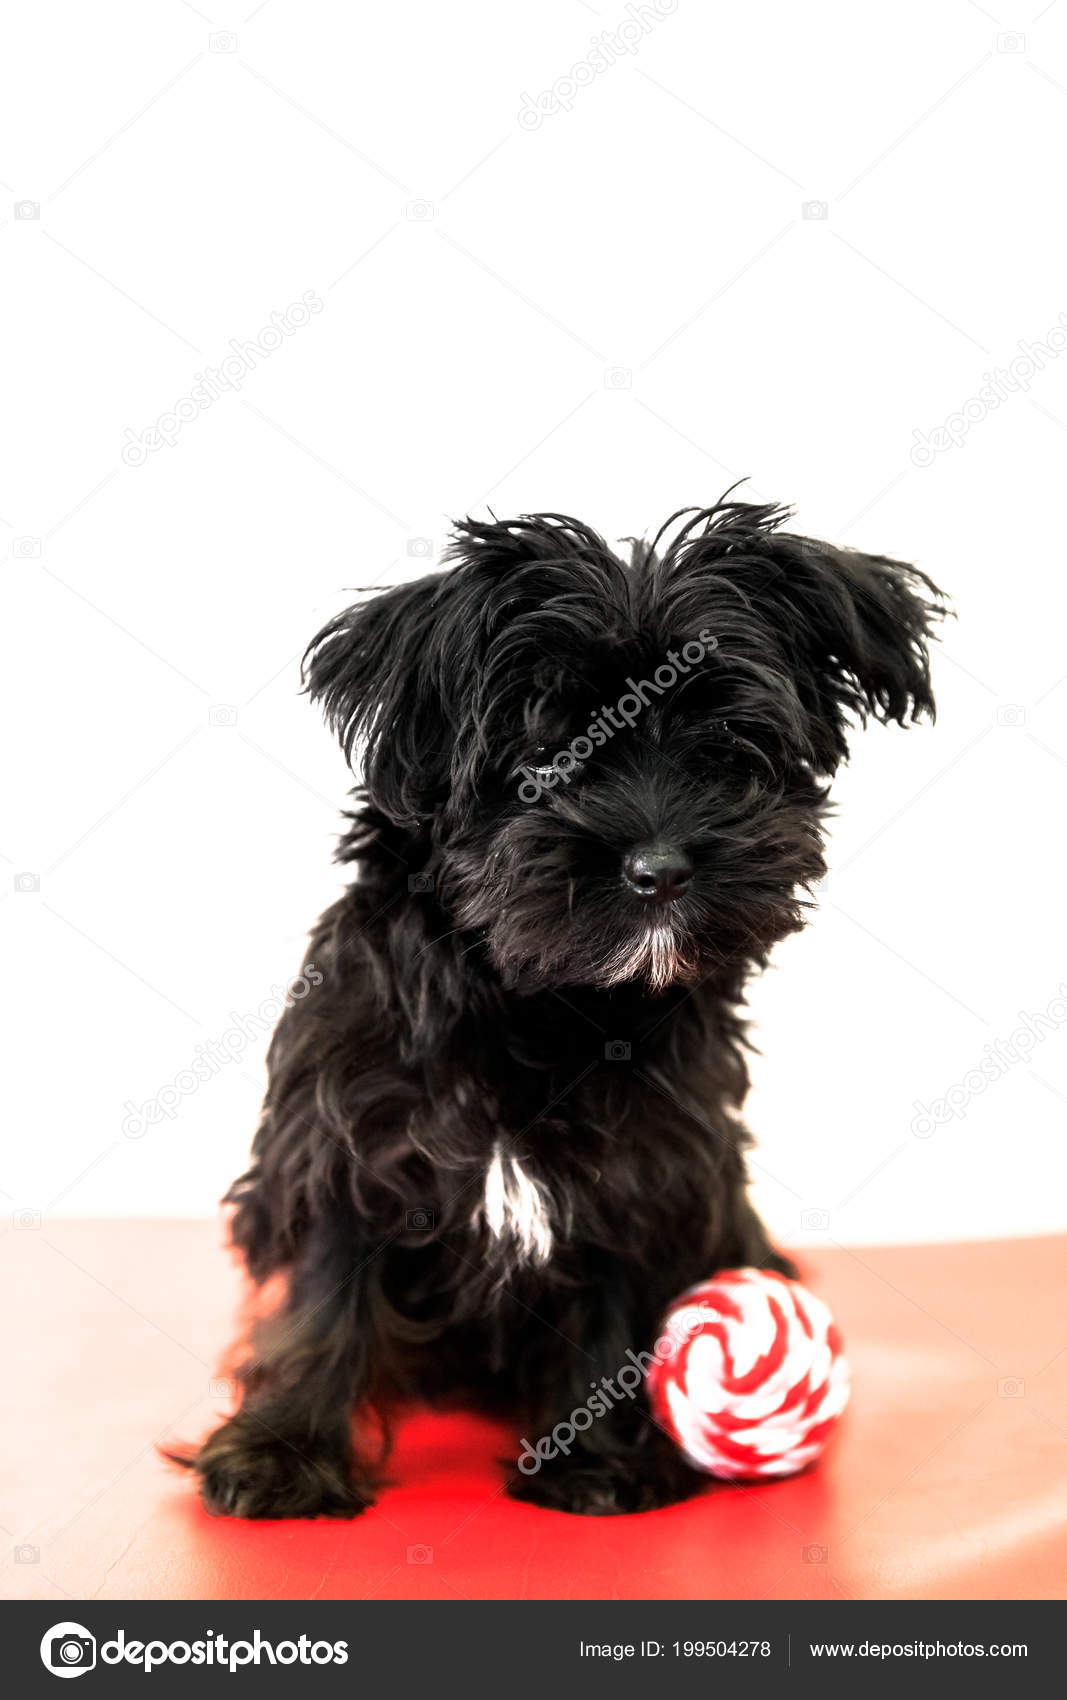 Small Black Dog Morkie Yorktese Malkie Months Old Puppy Red Stock